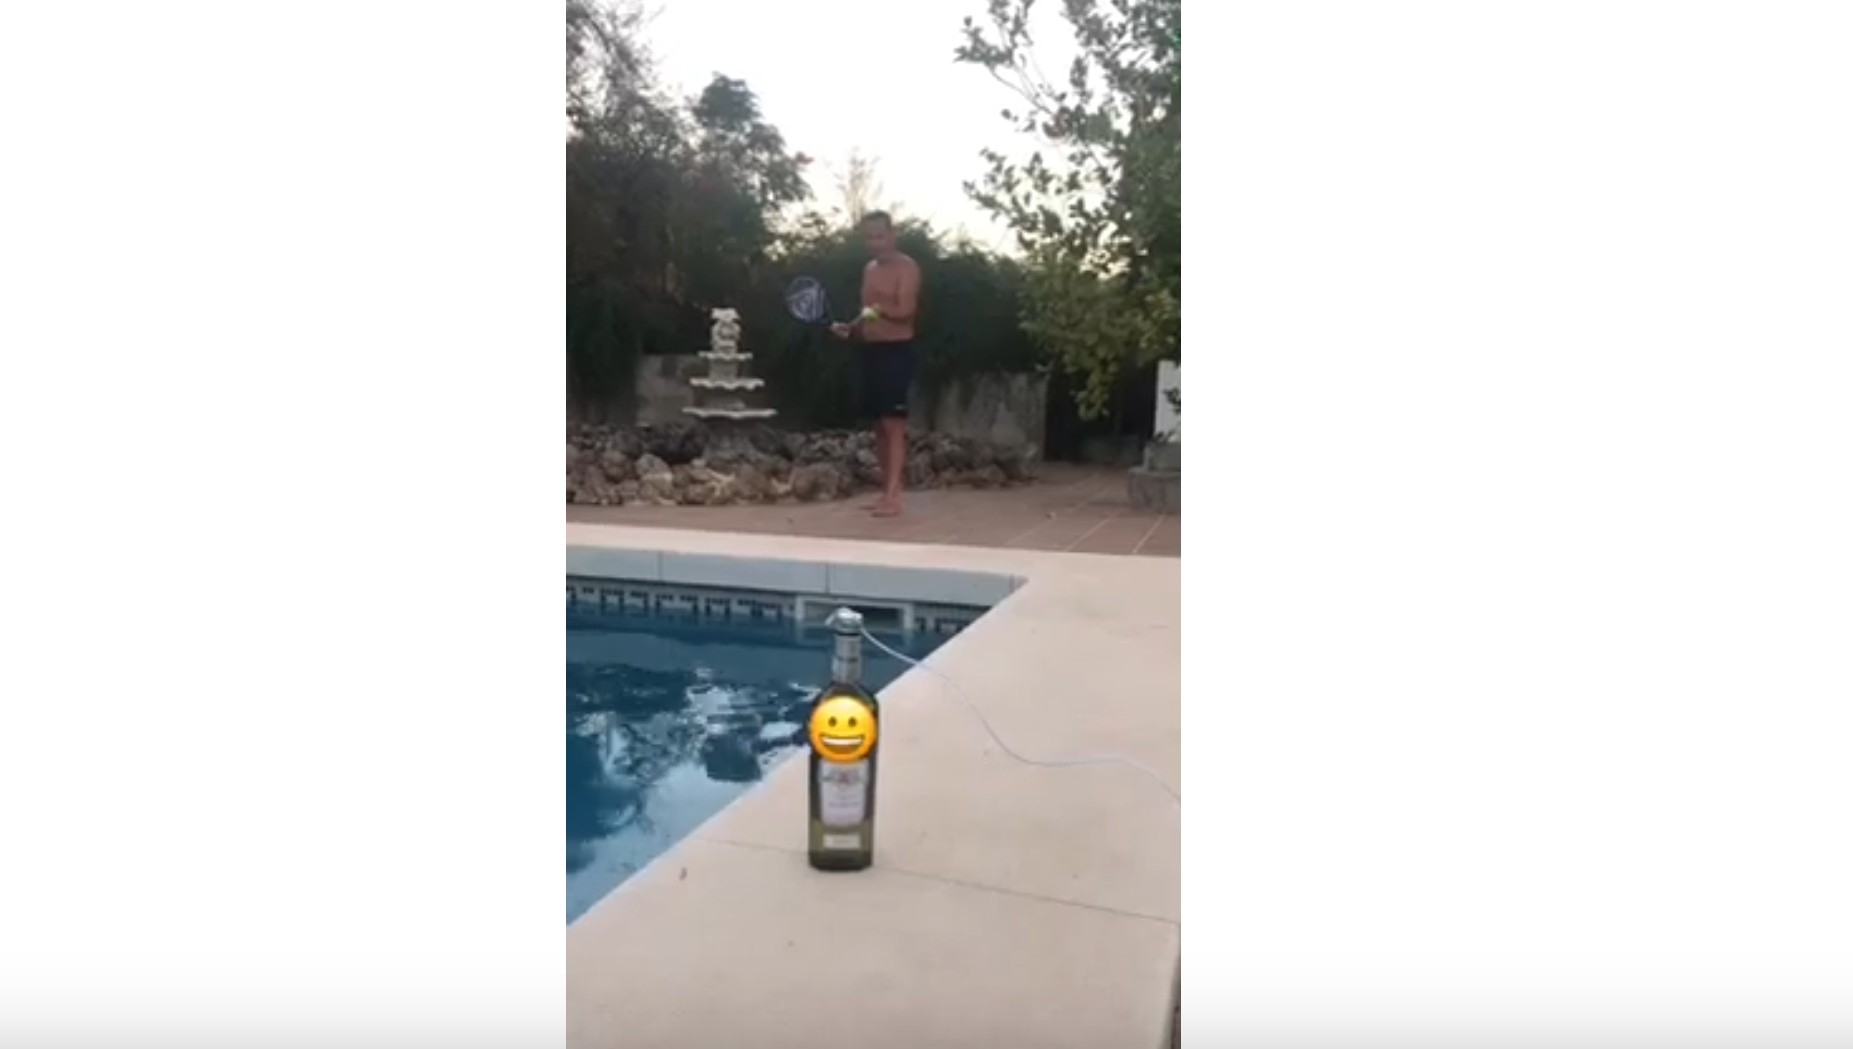 Unclog a bottle - Special effects